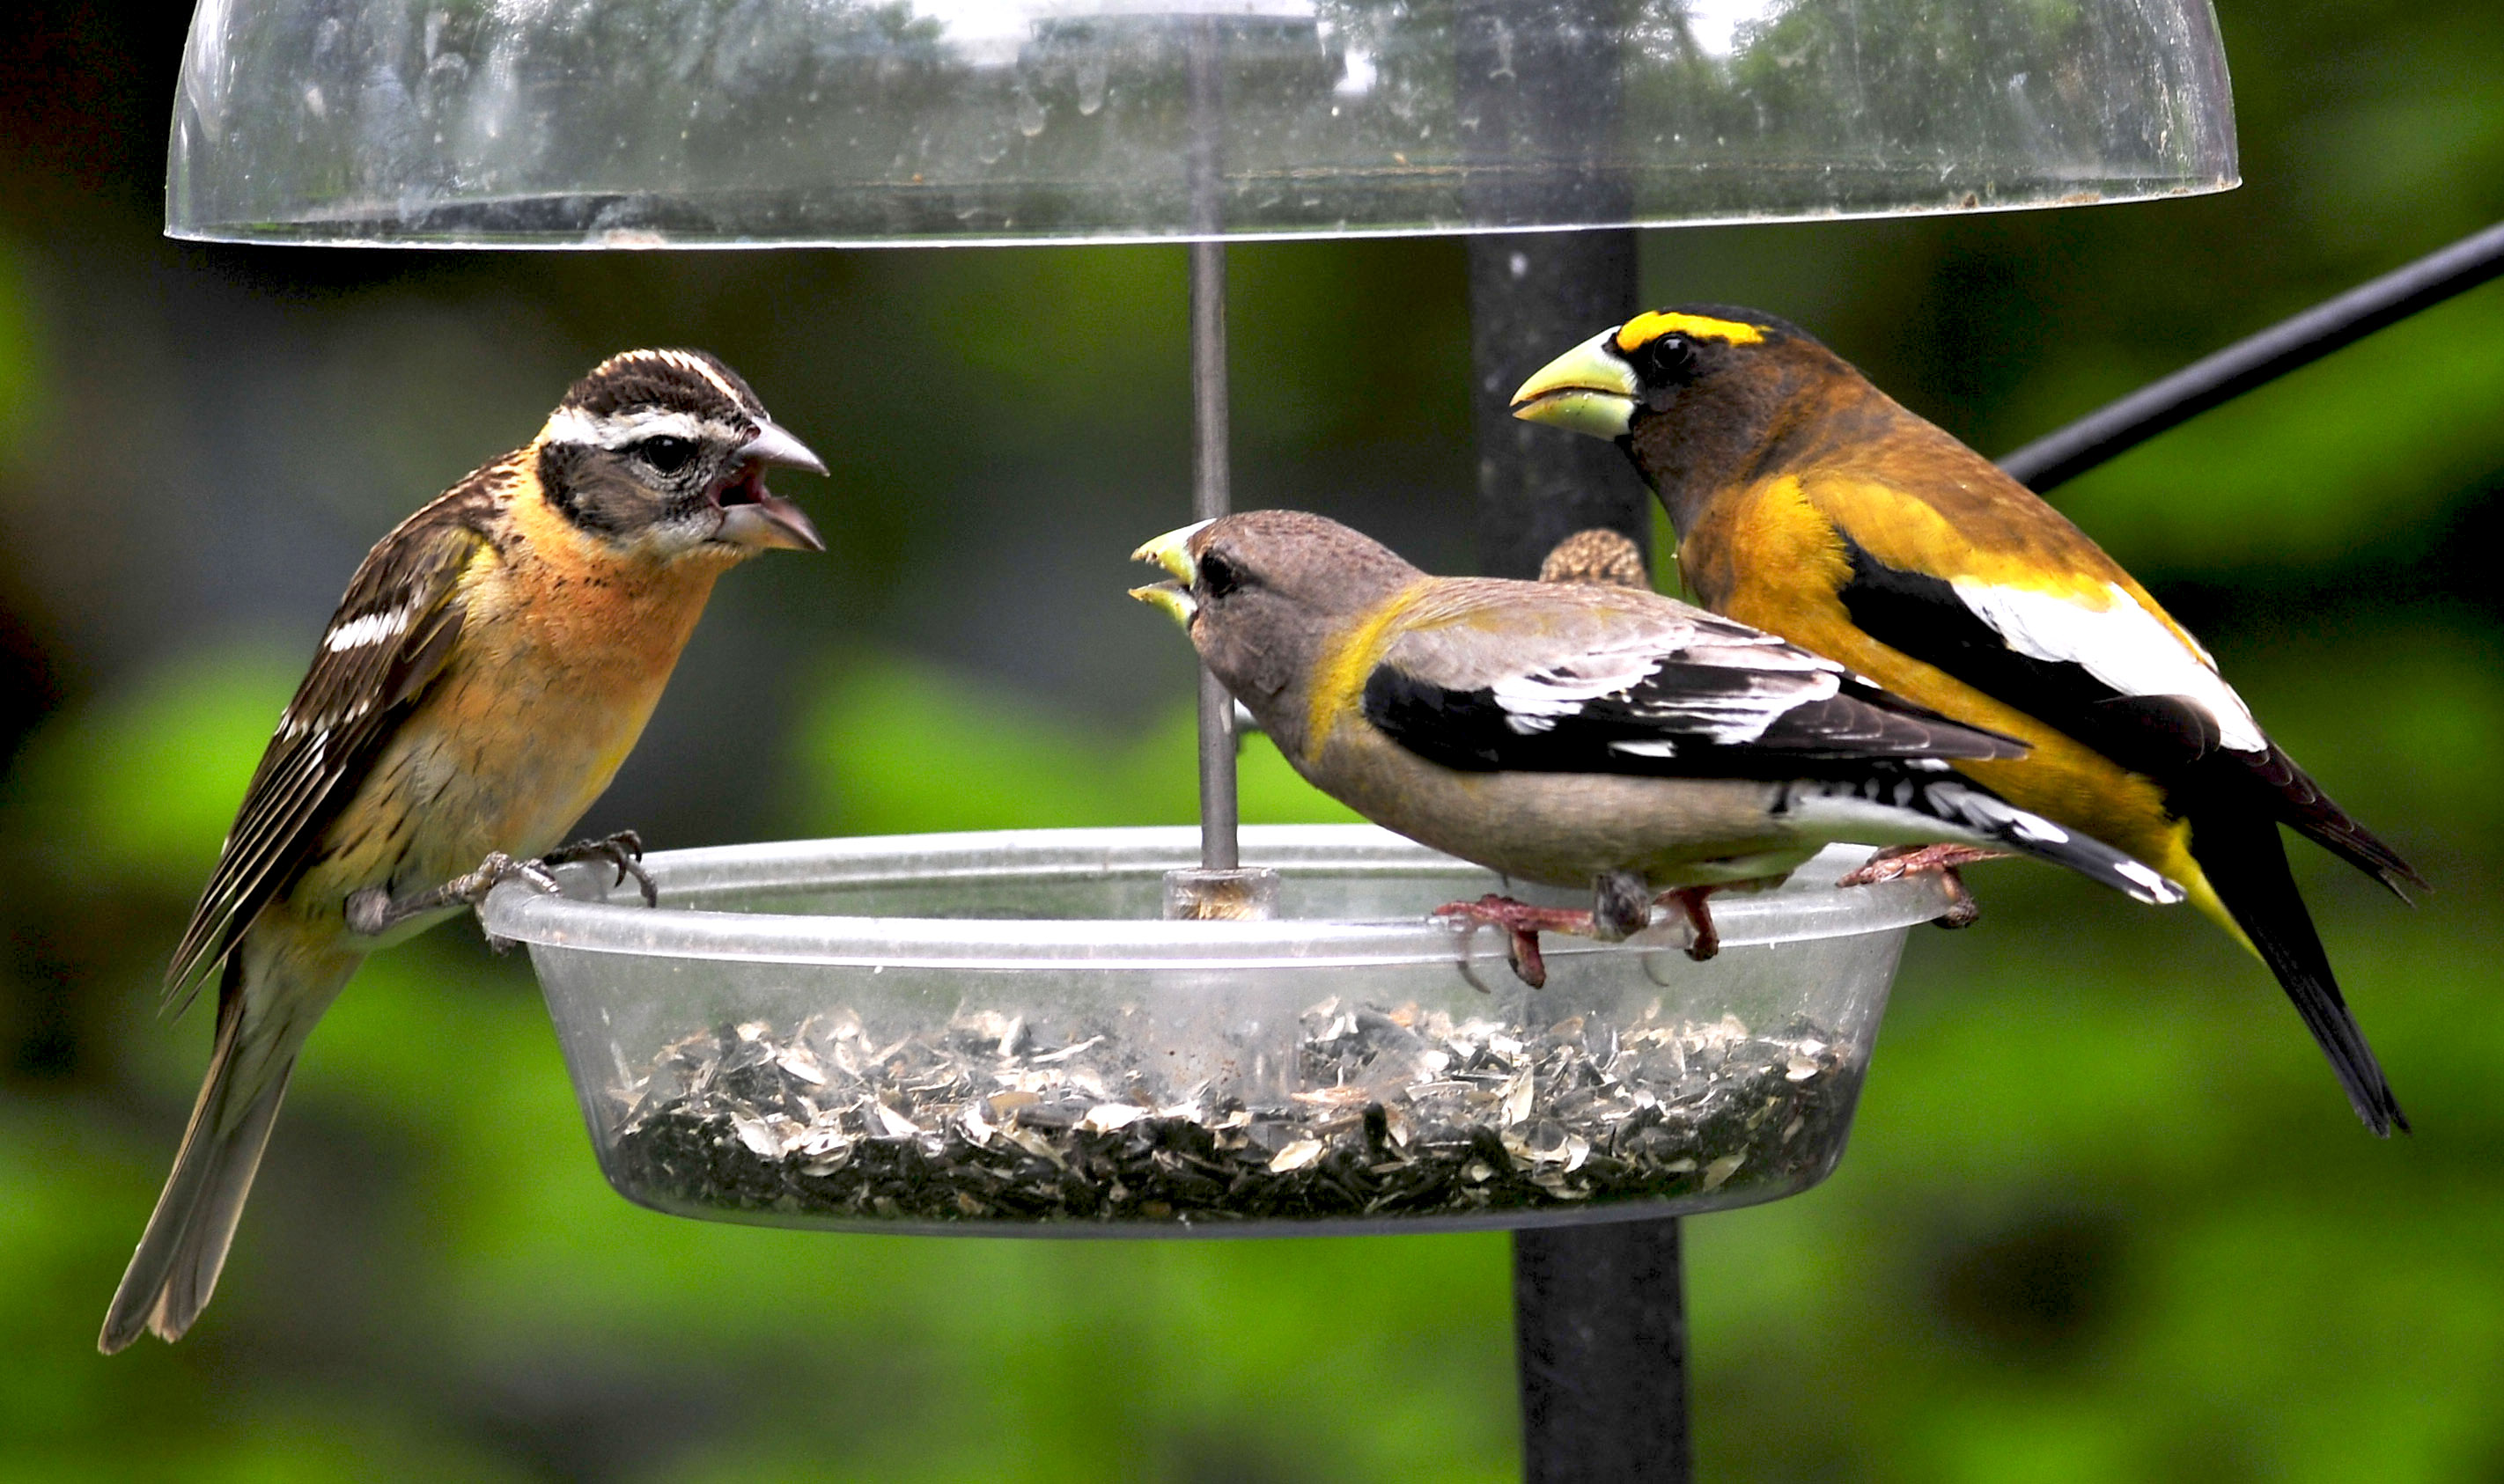 Julie Craves explains why grosbeaks are not listed together in field guides